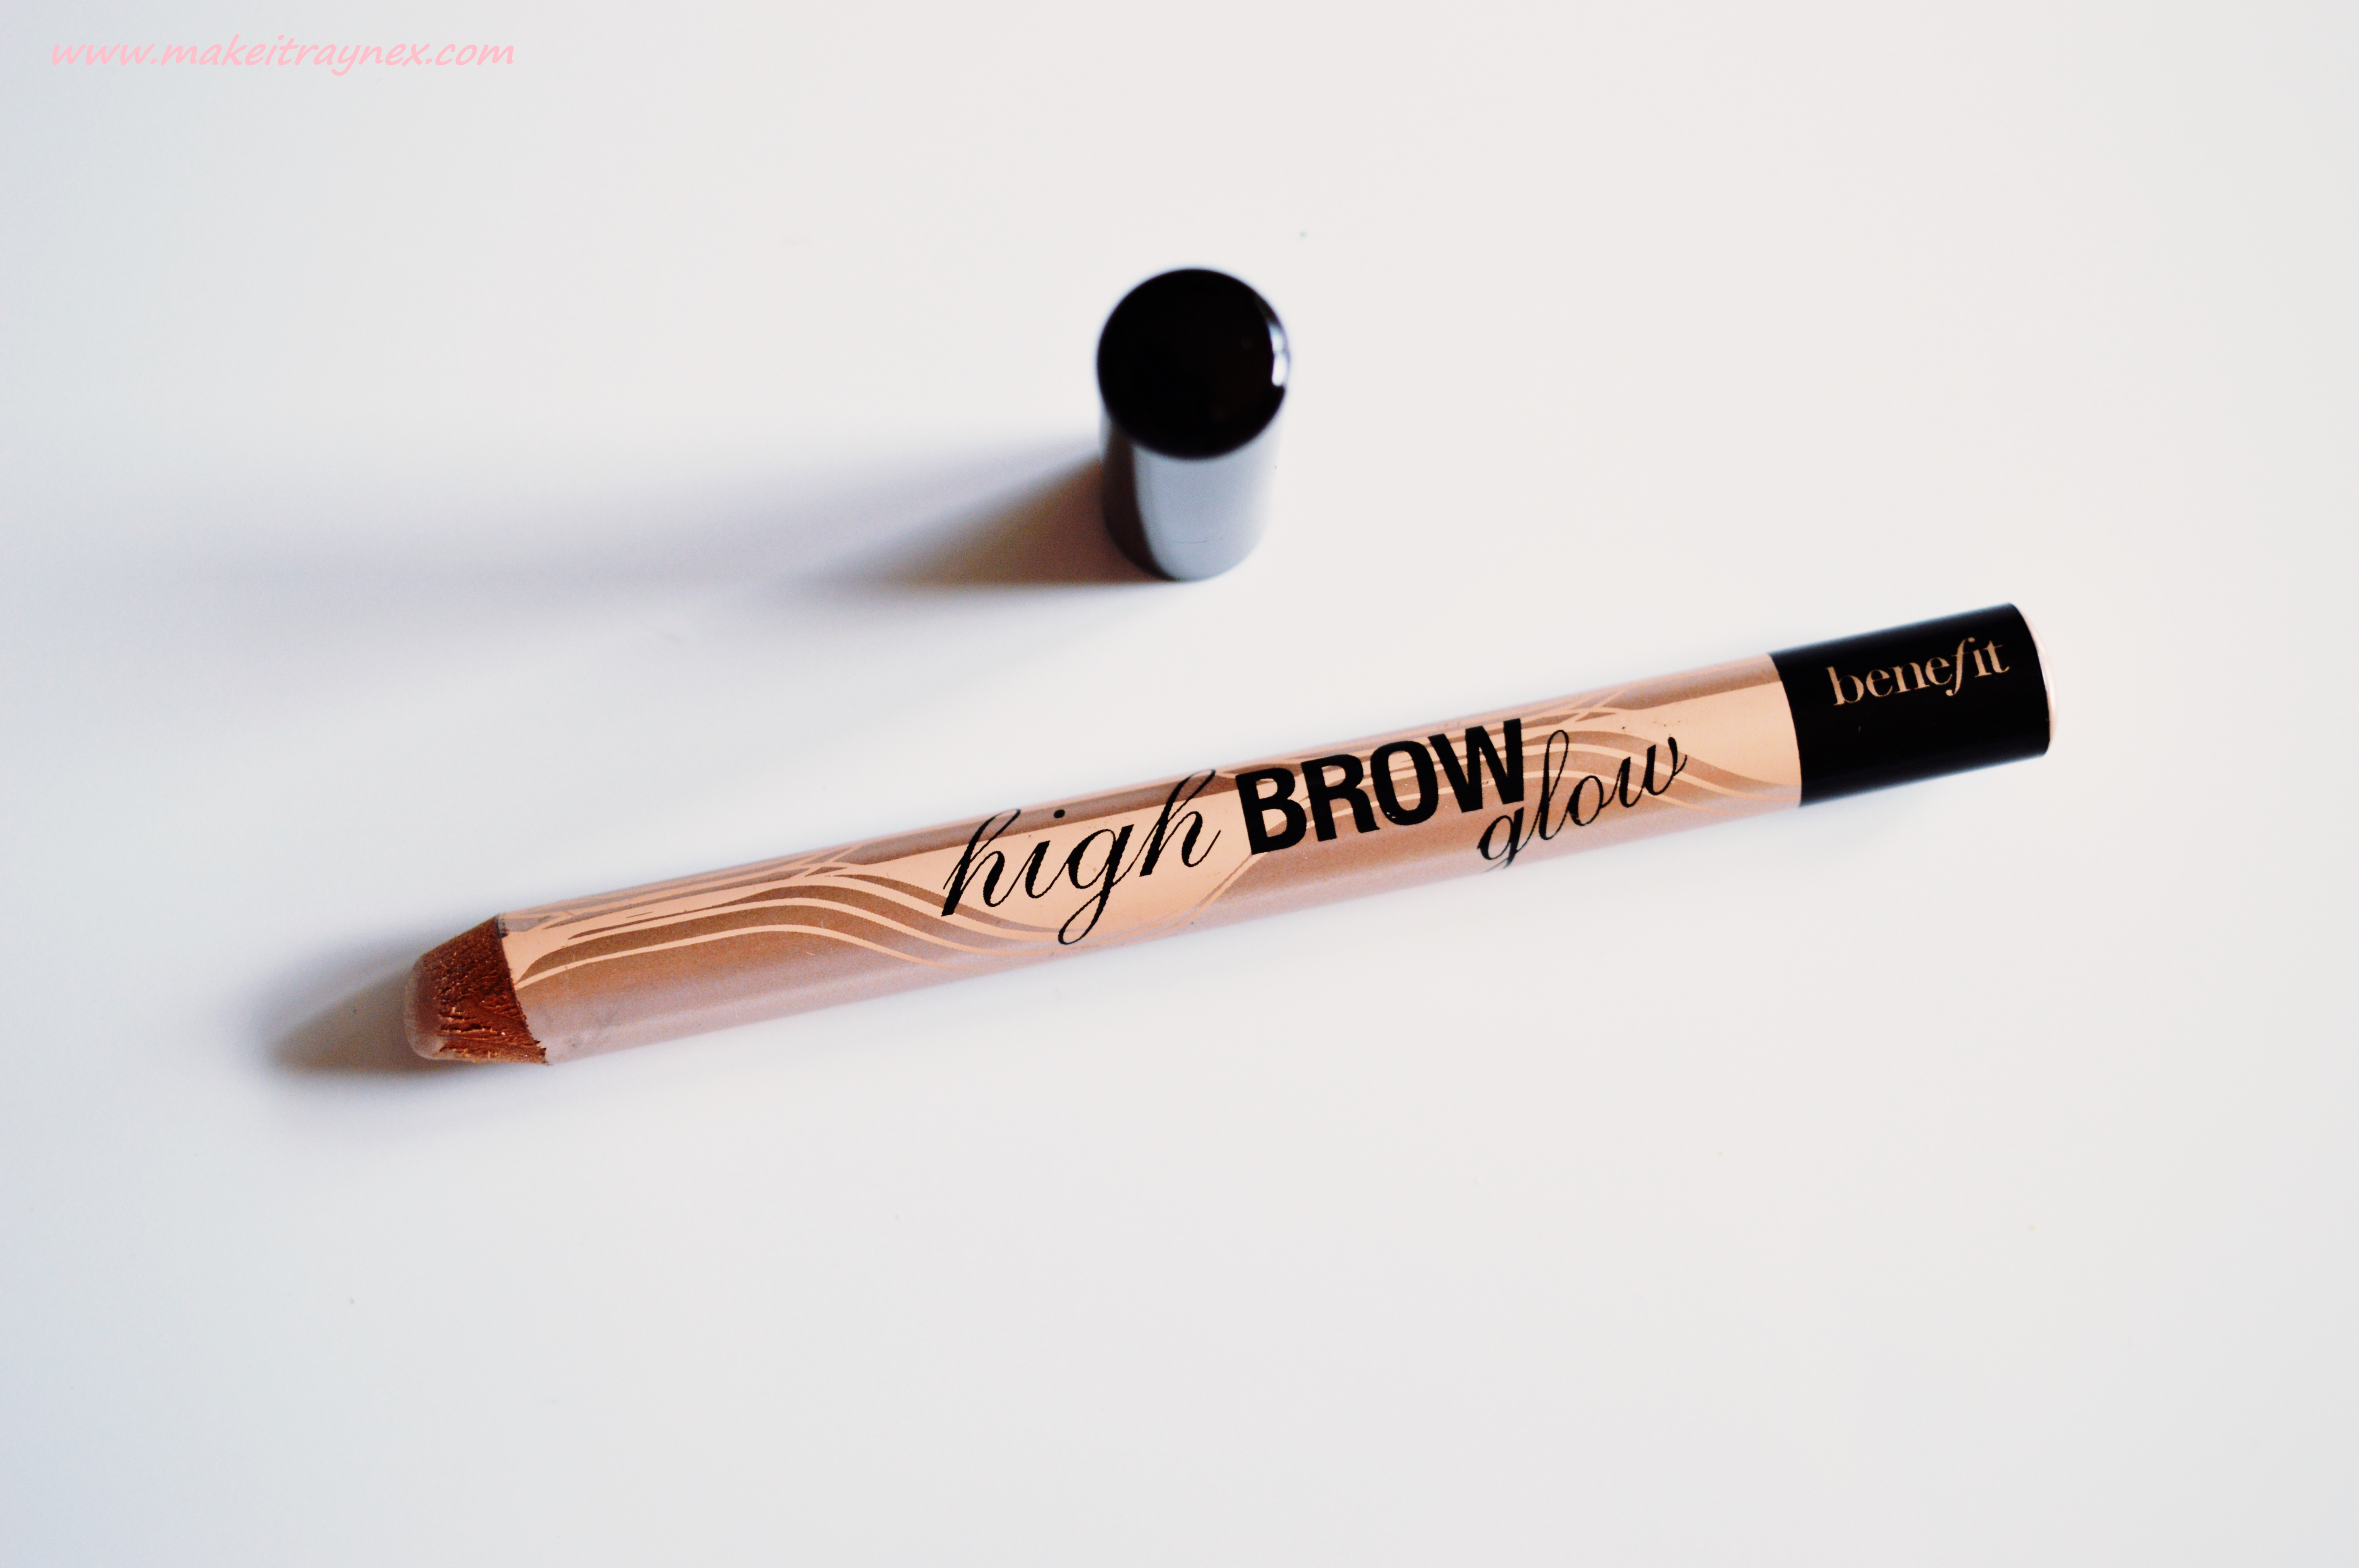 High Brow Glow Pencil by Benefit Cosmetics {REVIEW}